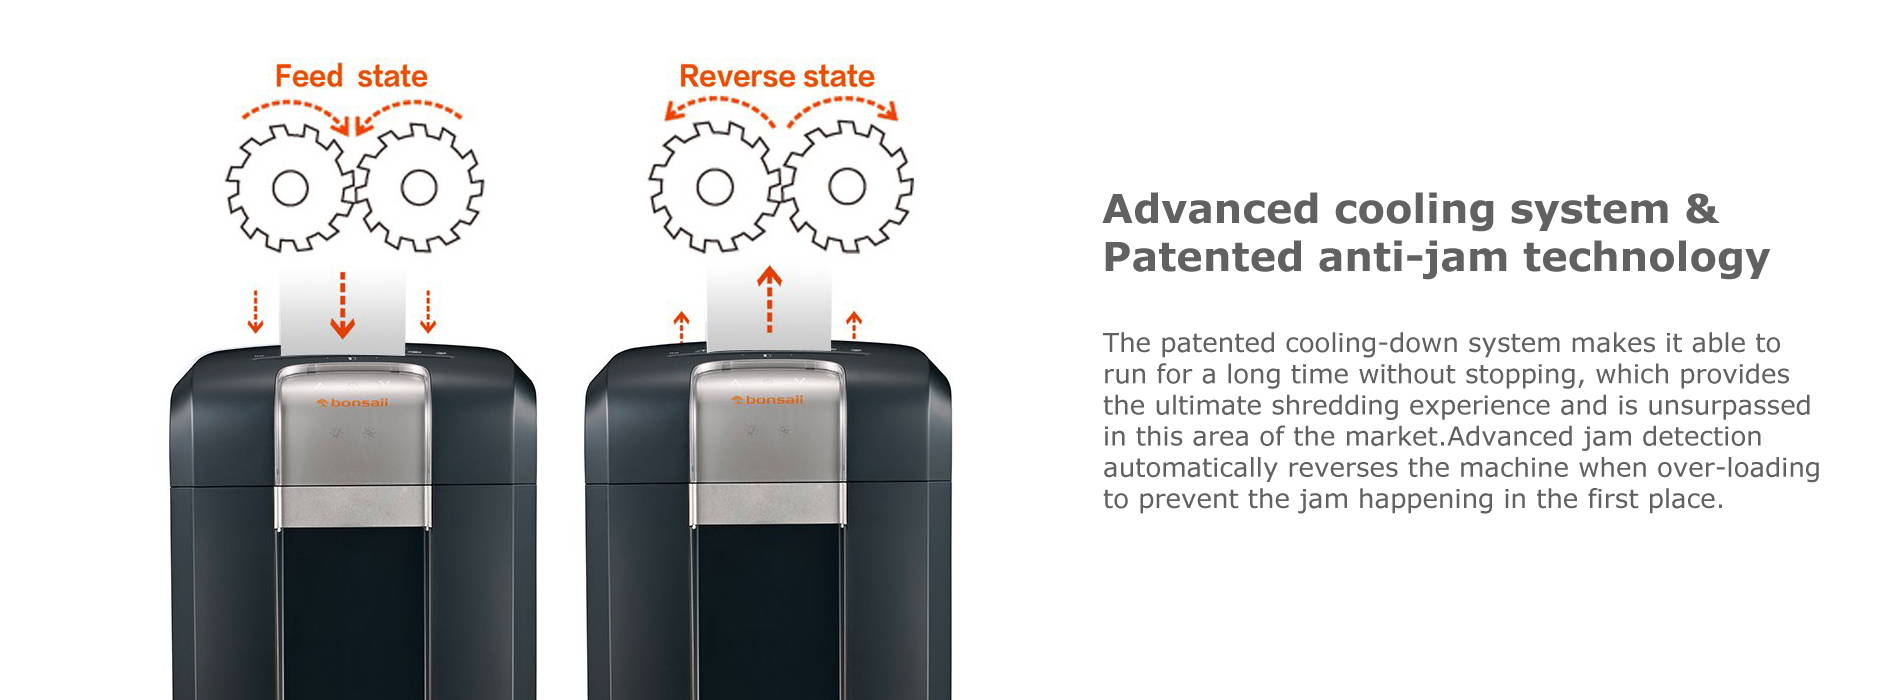 Advanced cooling system & Patented anti-jam technology The patented cooling-down system makes it able to run for a long time without stopping, which provides the ultimate shredding experience and is unsurpassed in this area of the market.Advanced jam detection automatically reverses the machine when over-loading to prevent the jam happening in the first place.